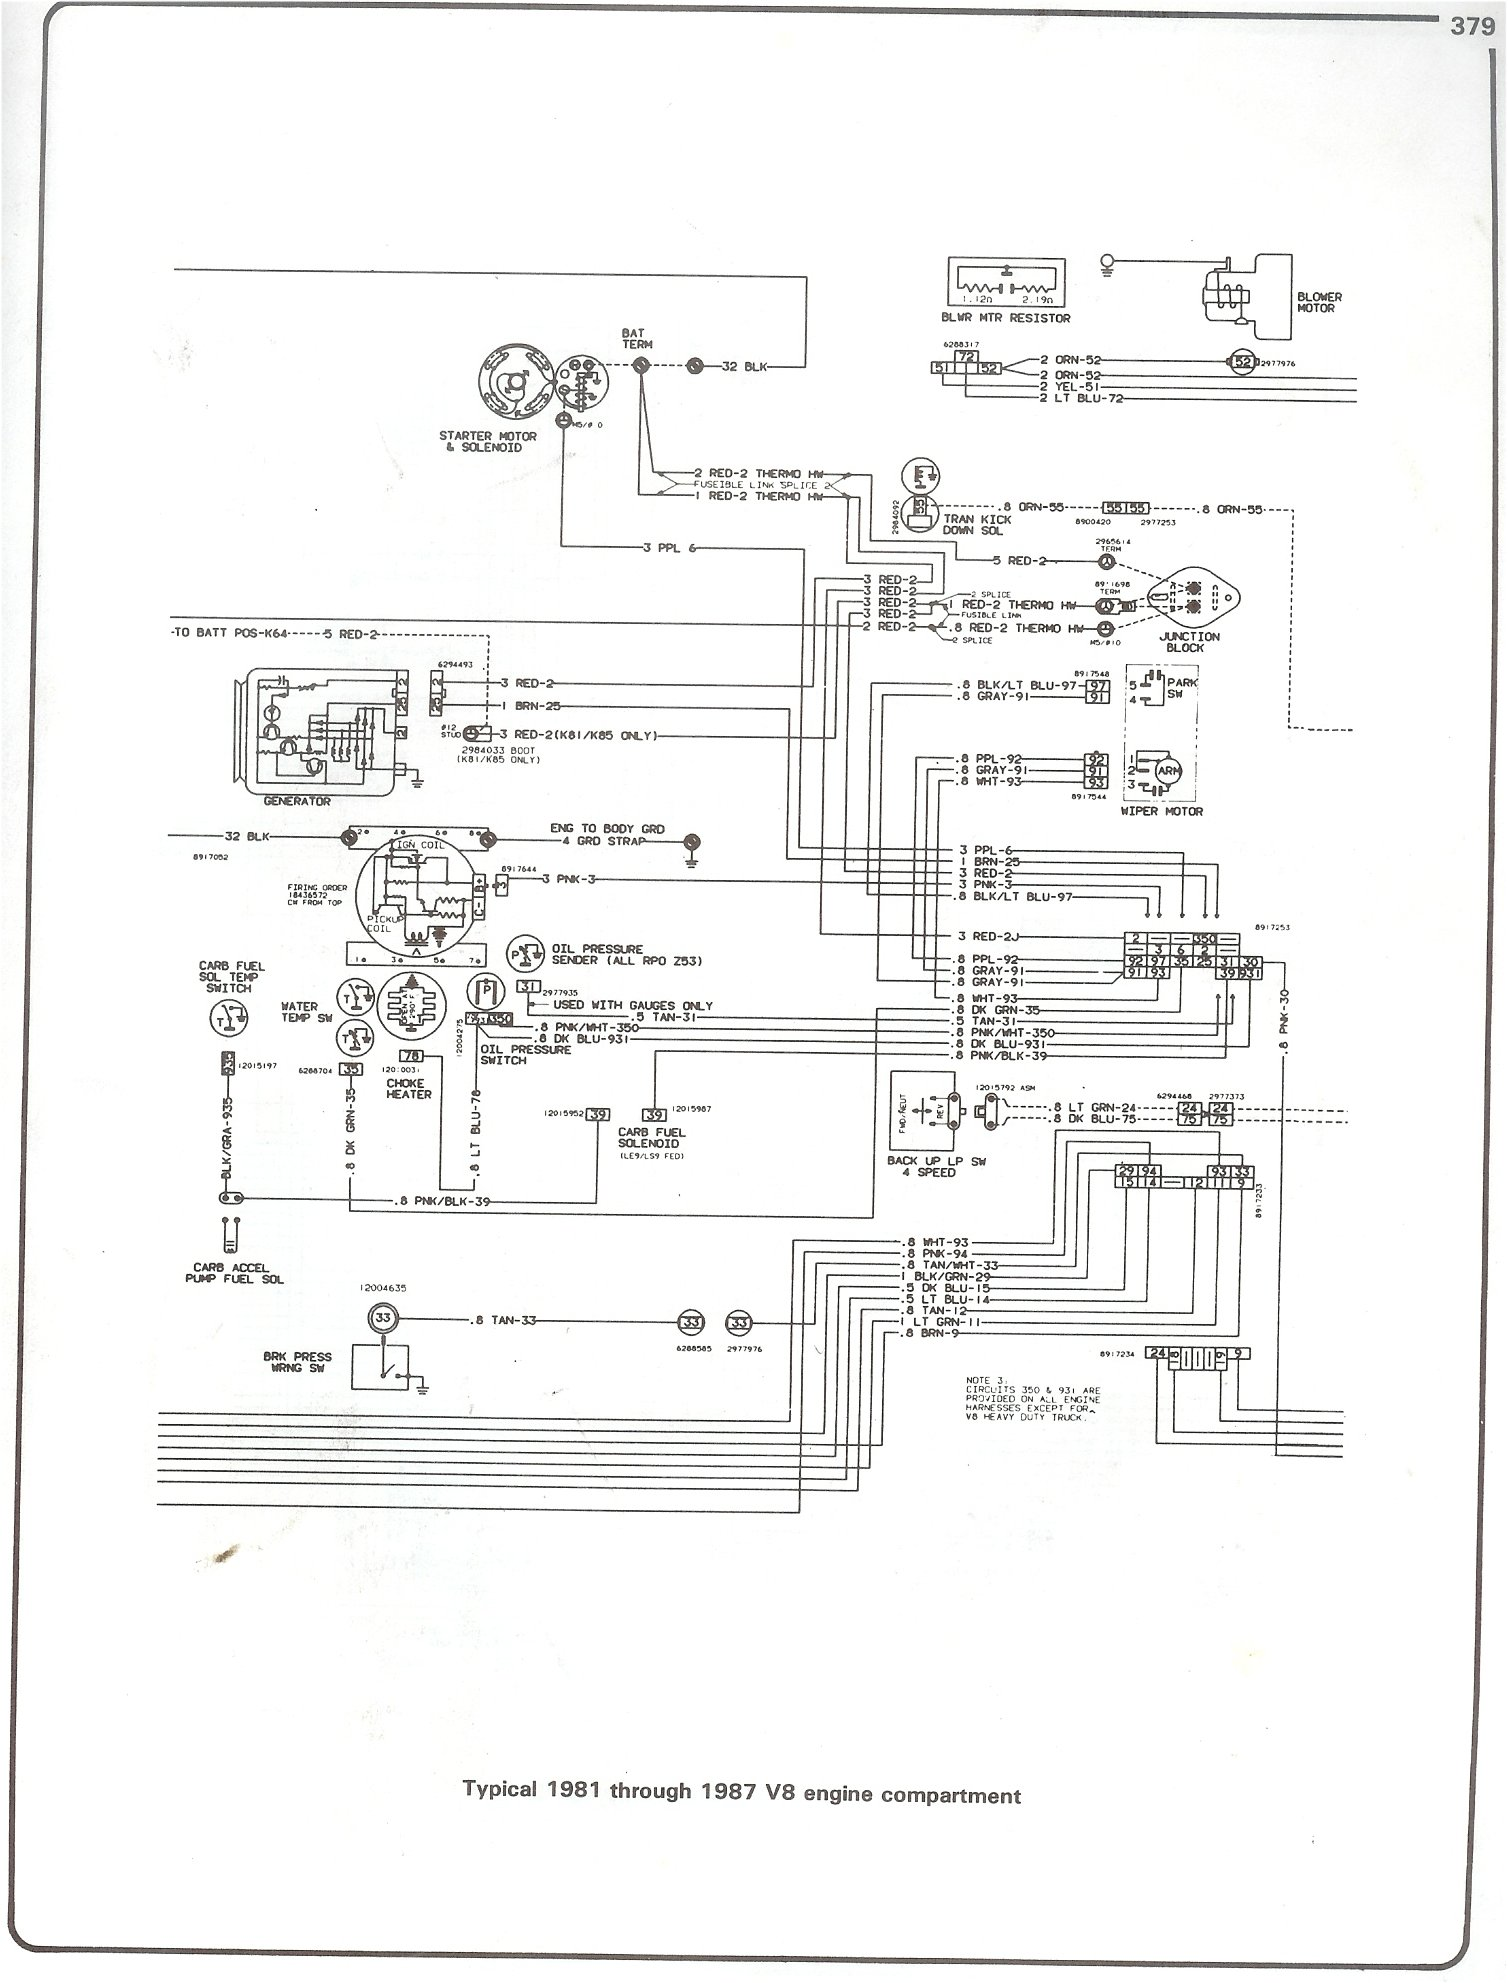 82 Gmc Sierra Wiring Diagrams Archive Of Automotive Diagram Fuse 1980 Chevy Truck Just Data Rh Ag Skiphire Co Uk